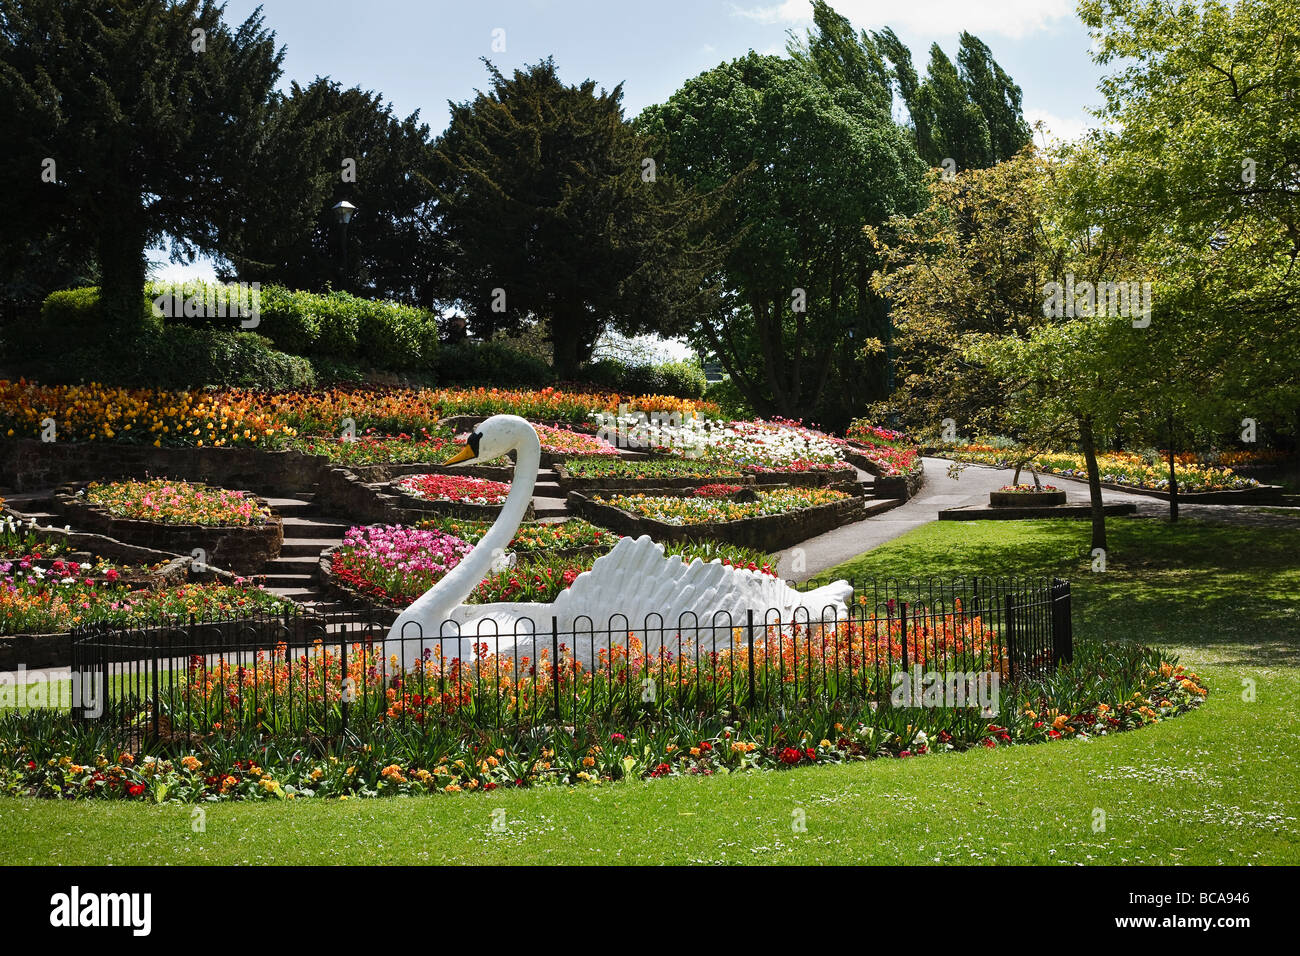 Floral display and the famous swan in Stapenhill Gardens, Burton upon Trent, Staffordshire - Stock Image